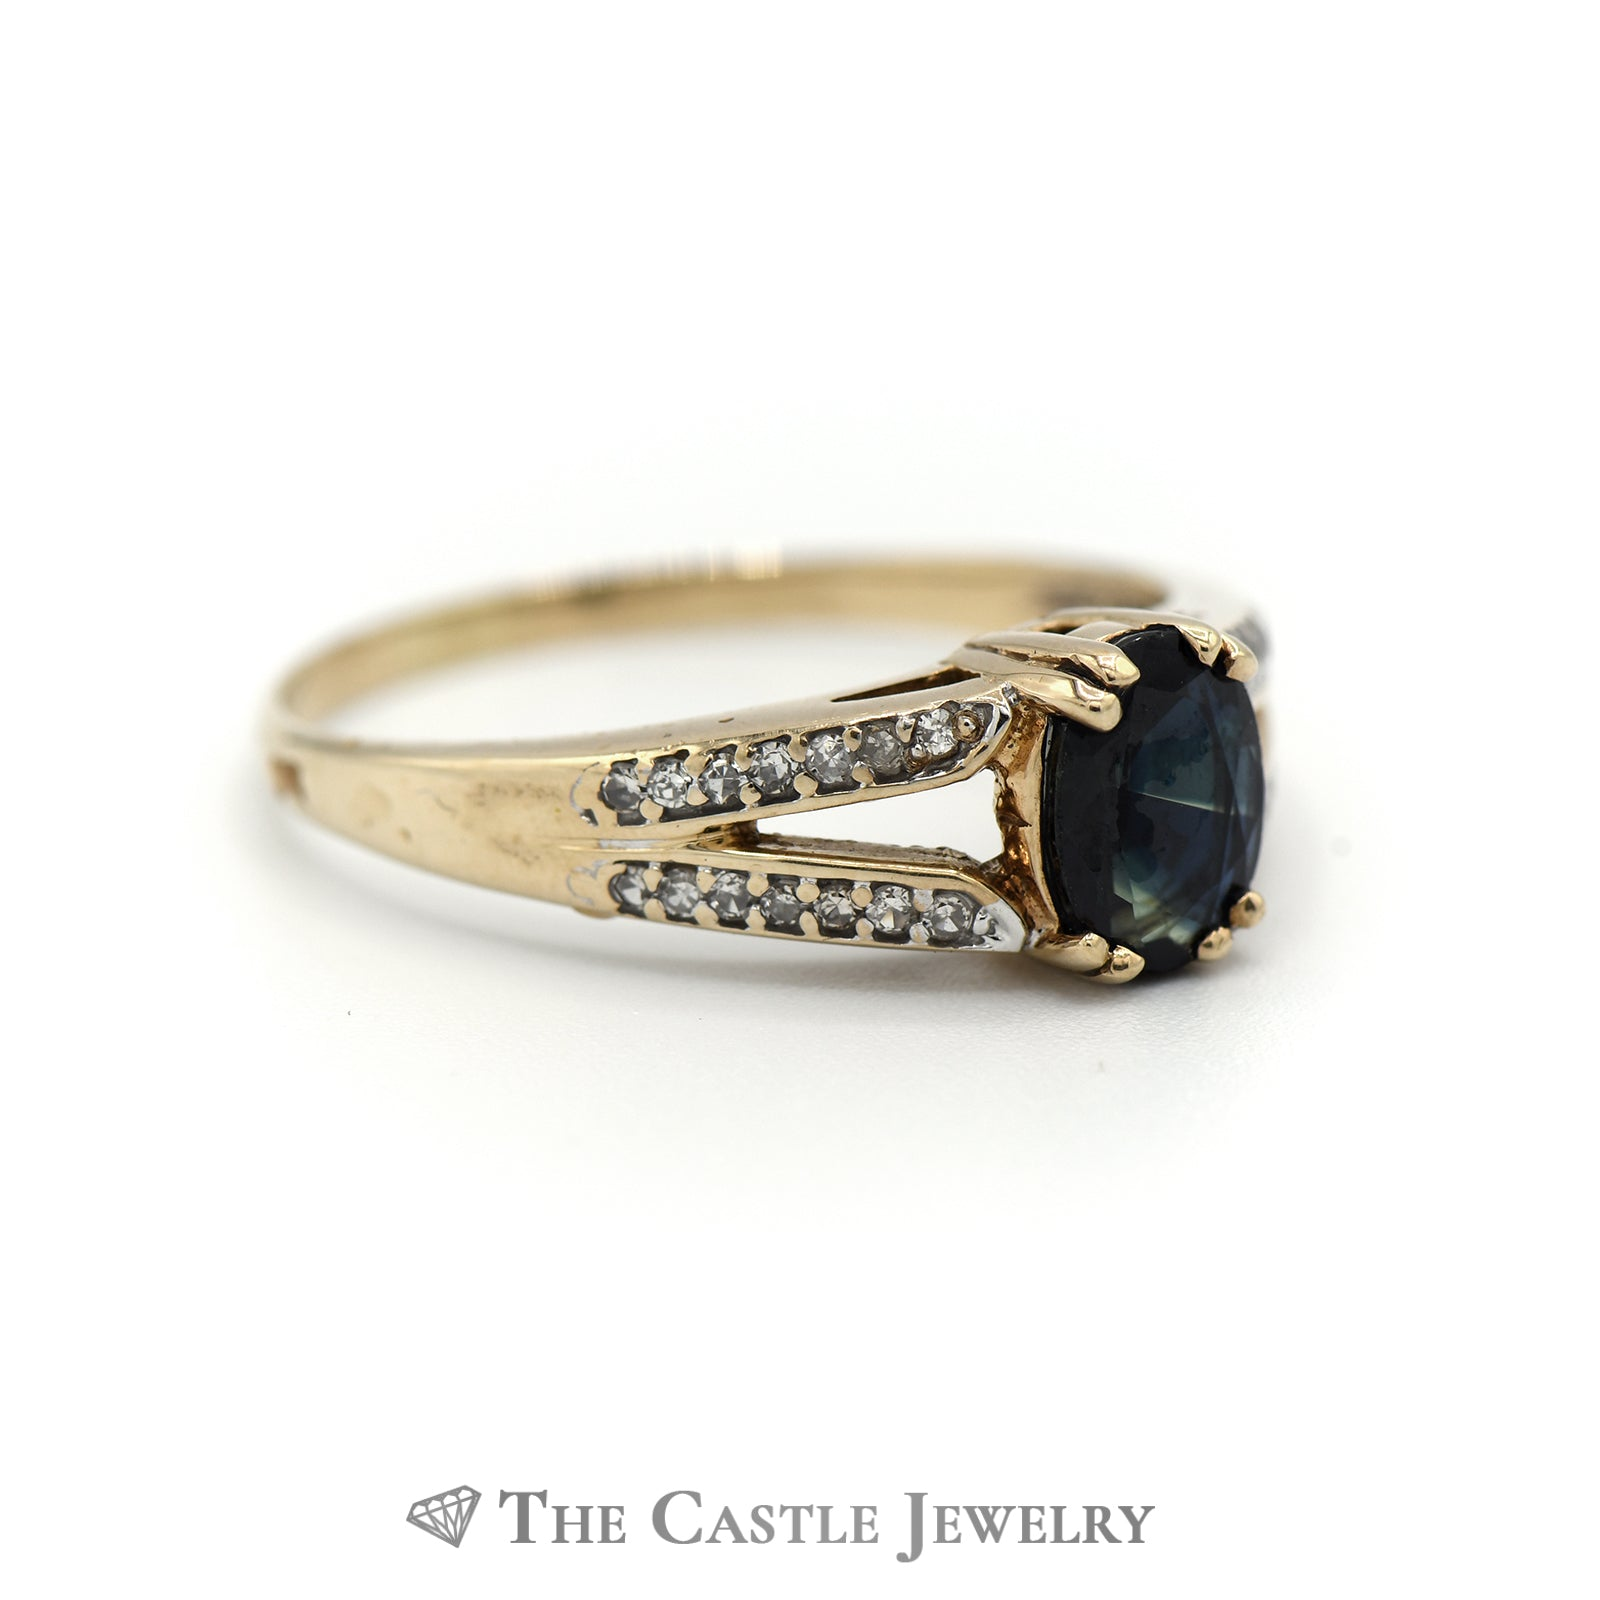 Stunning Oval Sapphire Ring with Round Diamond Sides in 10K Yellow Gold-2